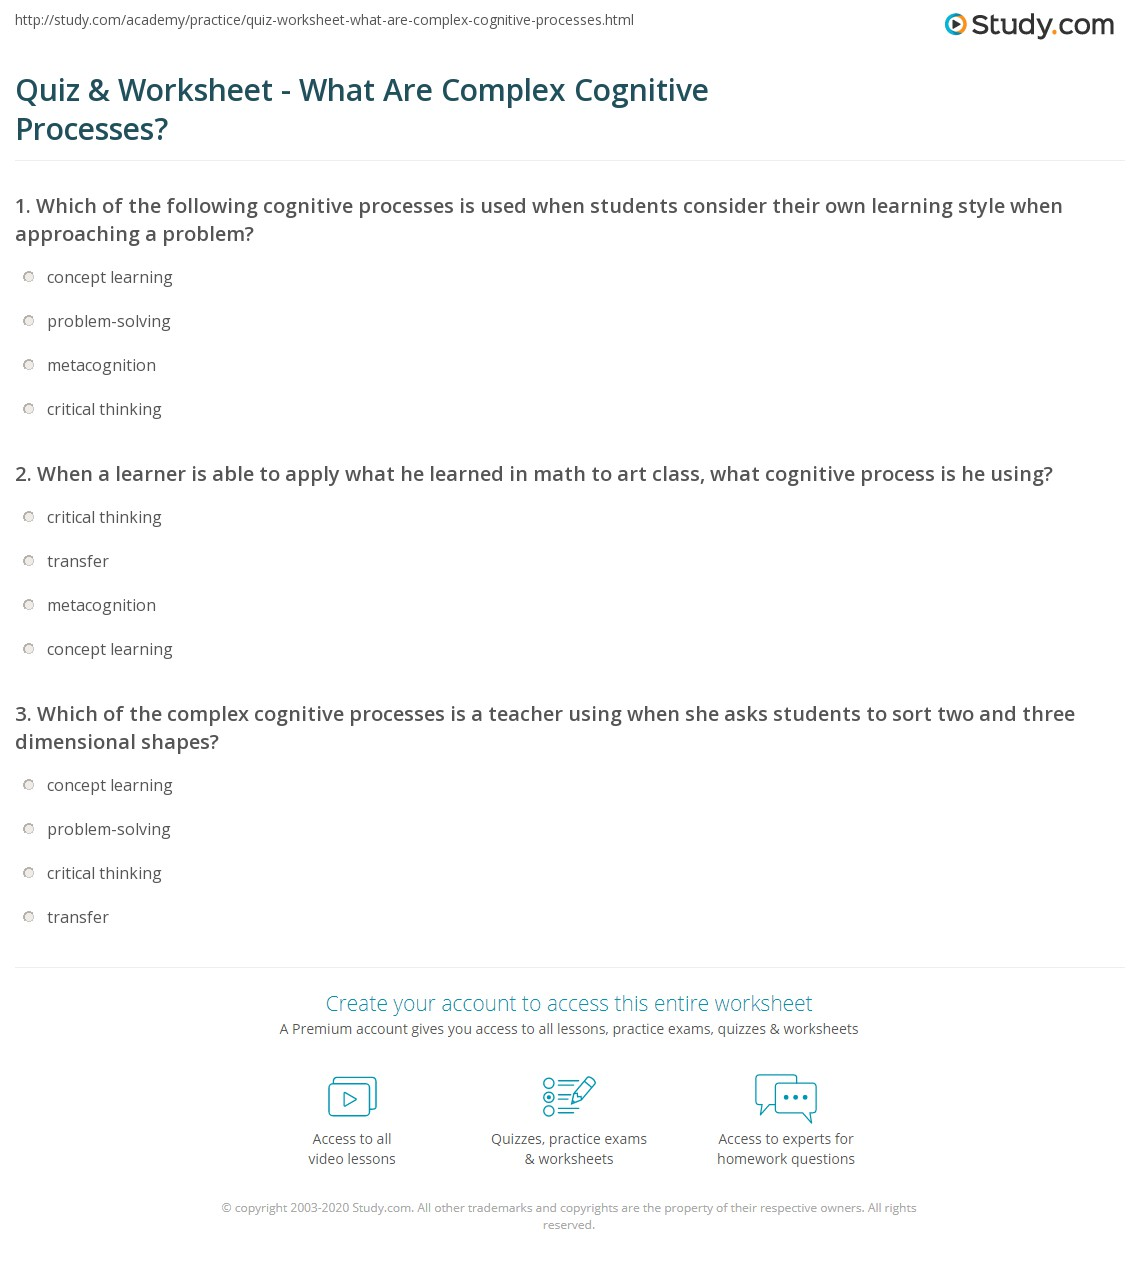 quiz & worksheet - what are complex cognitive processes? | study